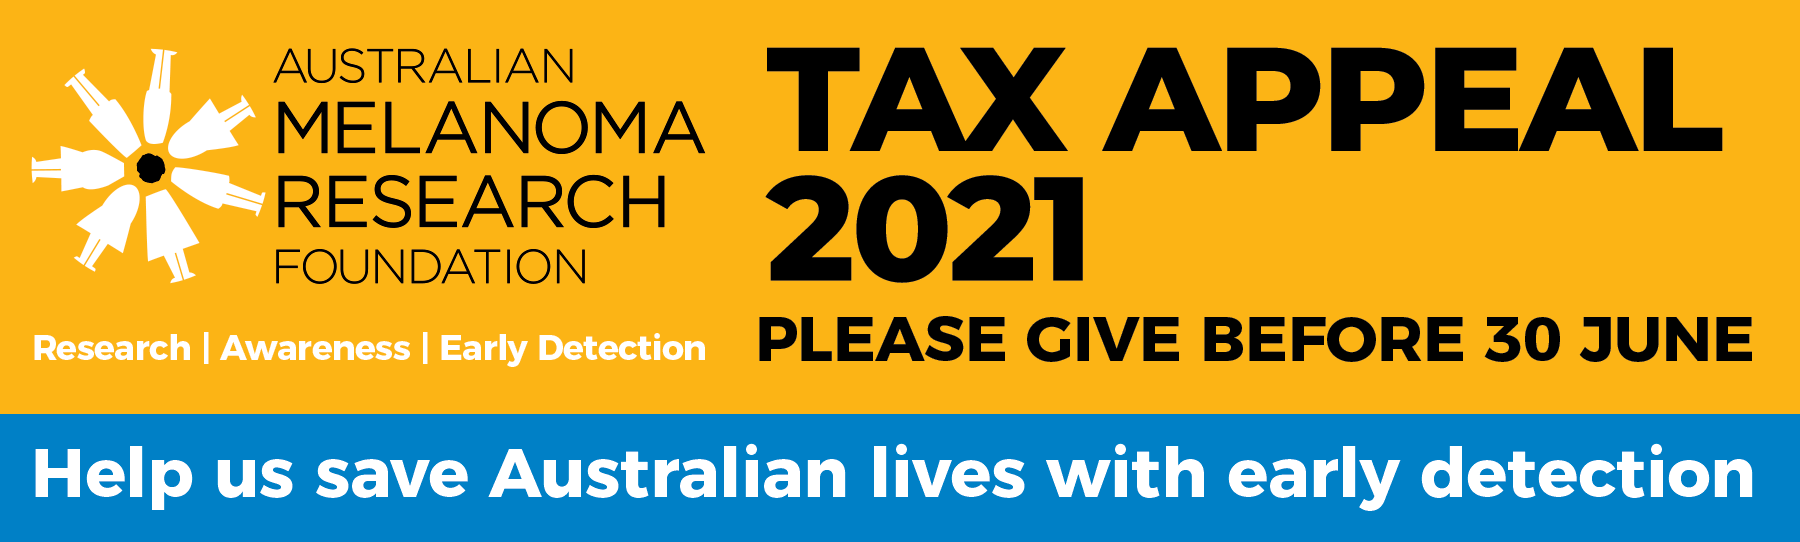 AMRF TAX APPEAL 2021 | Please give before 30 June